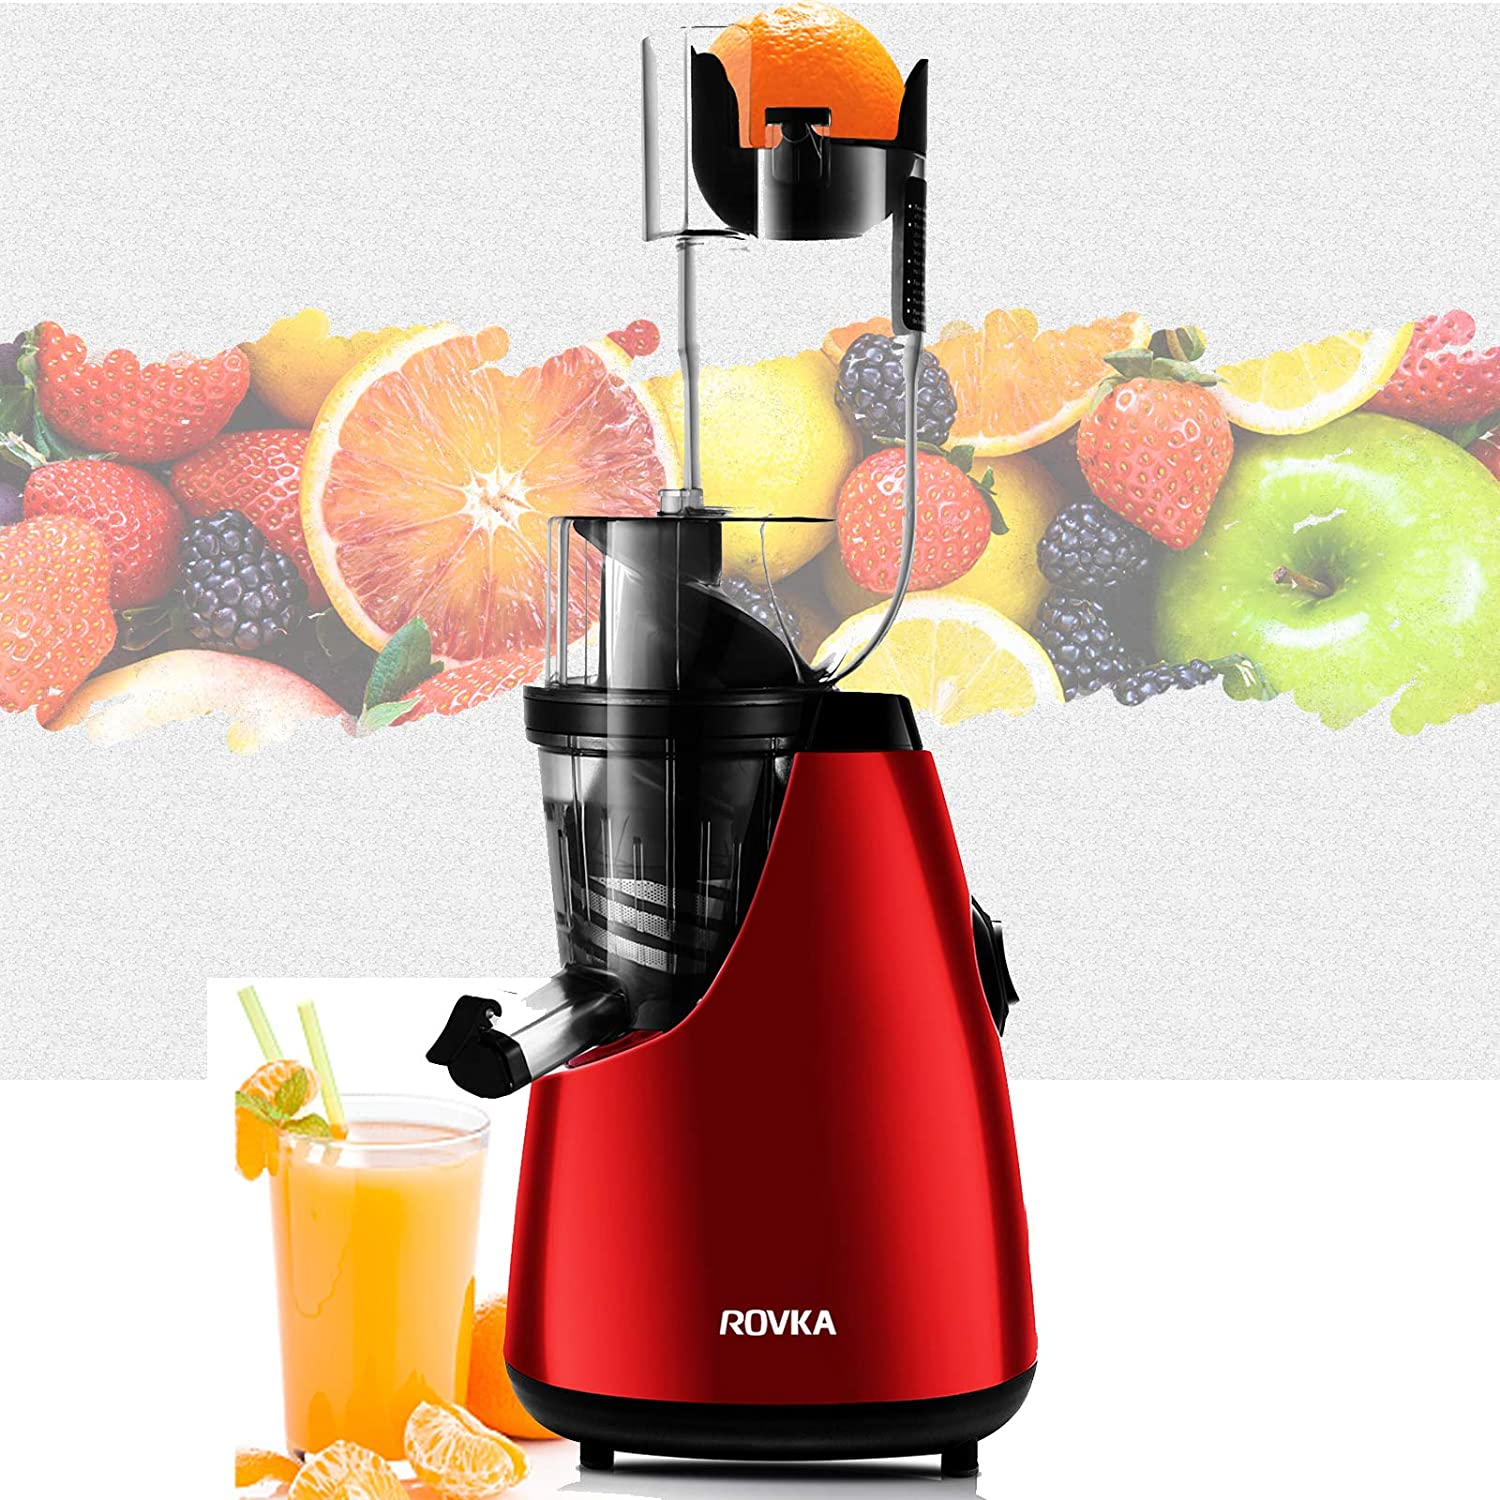 ROVKA Slow Masticating Juicer Extractor,3.15 Inches Wide Chute Cold Press Juicer for Easy Juice ,High Juice Yield for Fruit and Vegetable